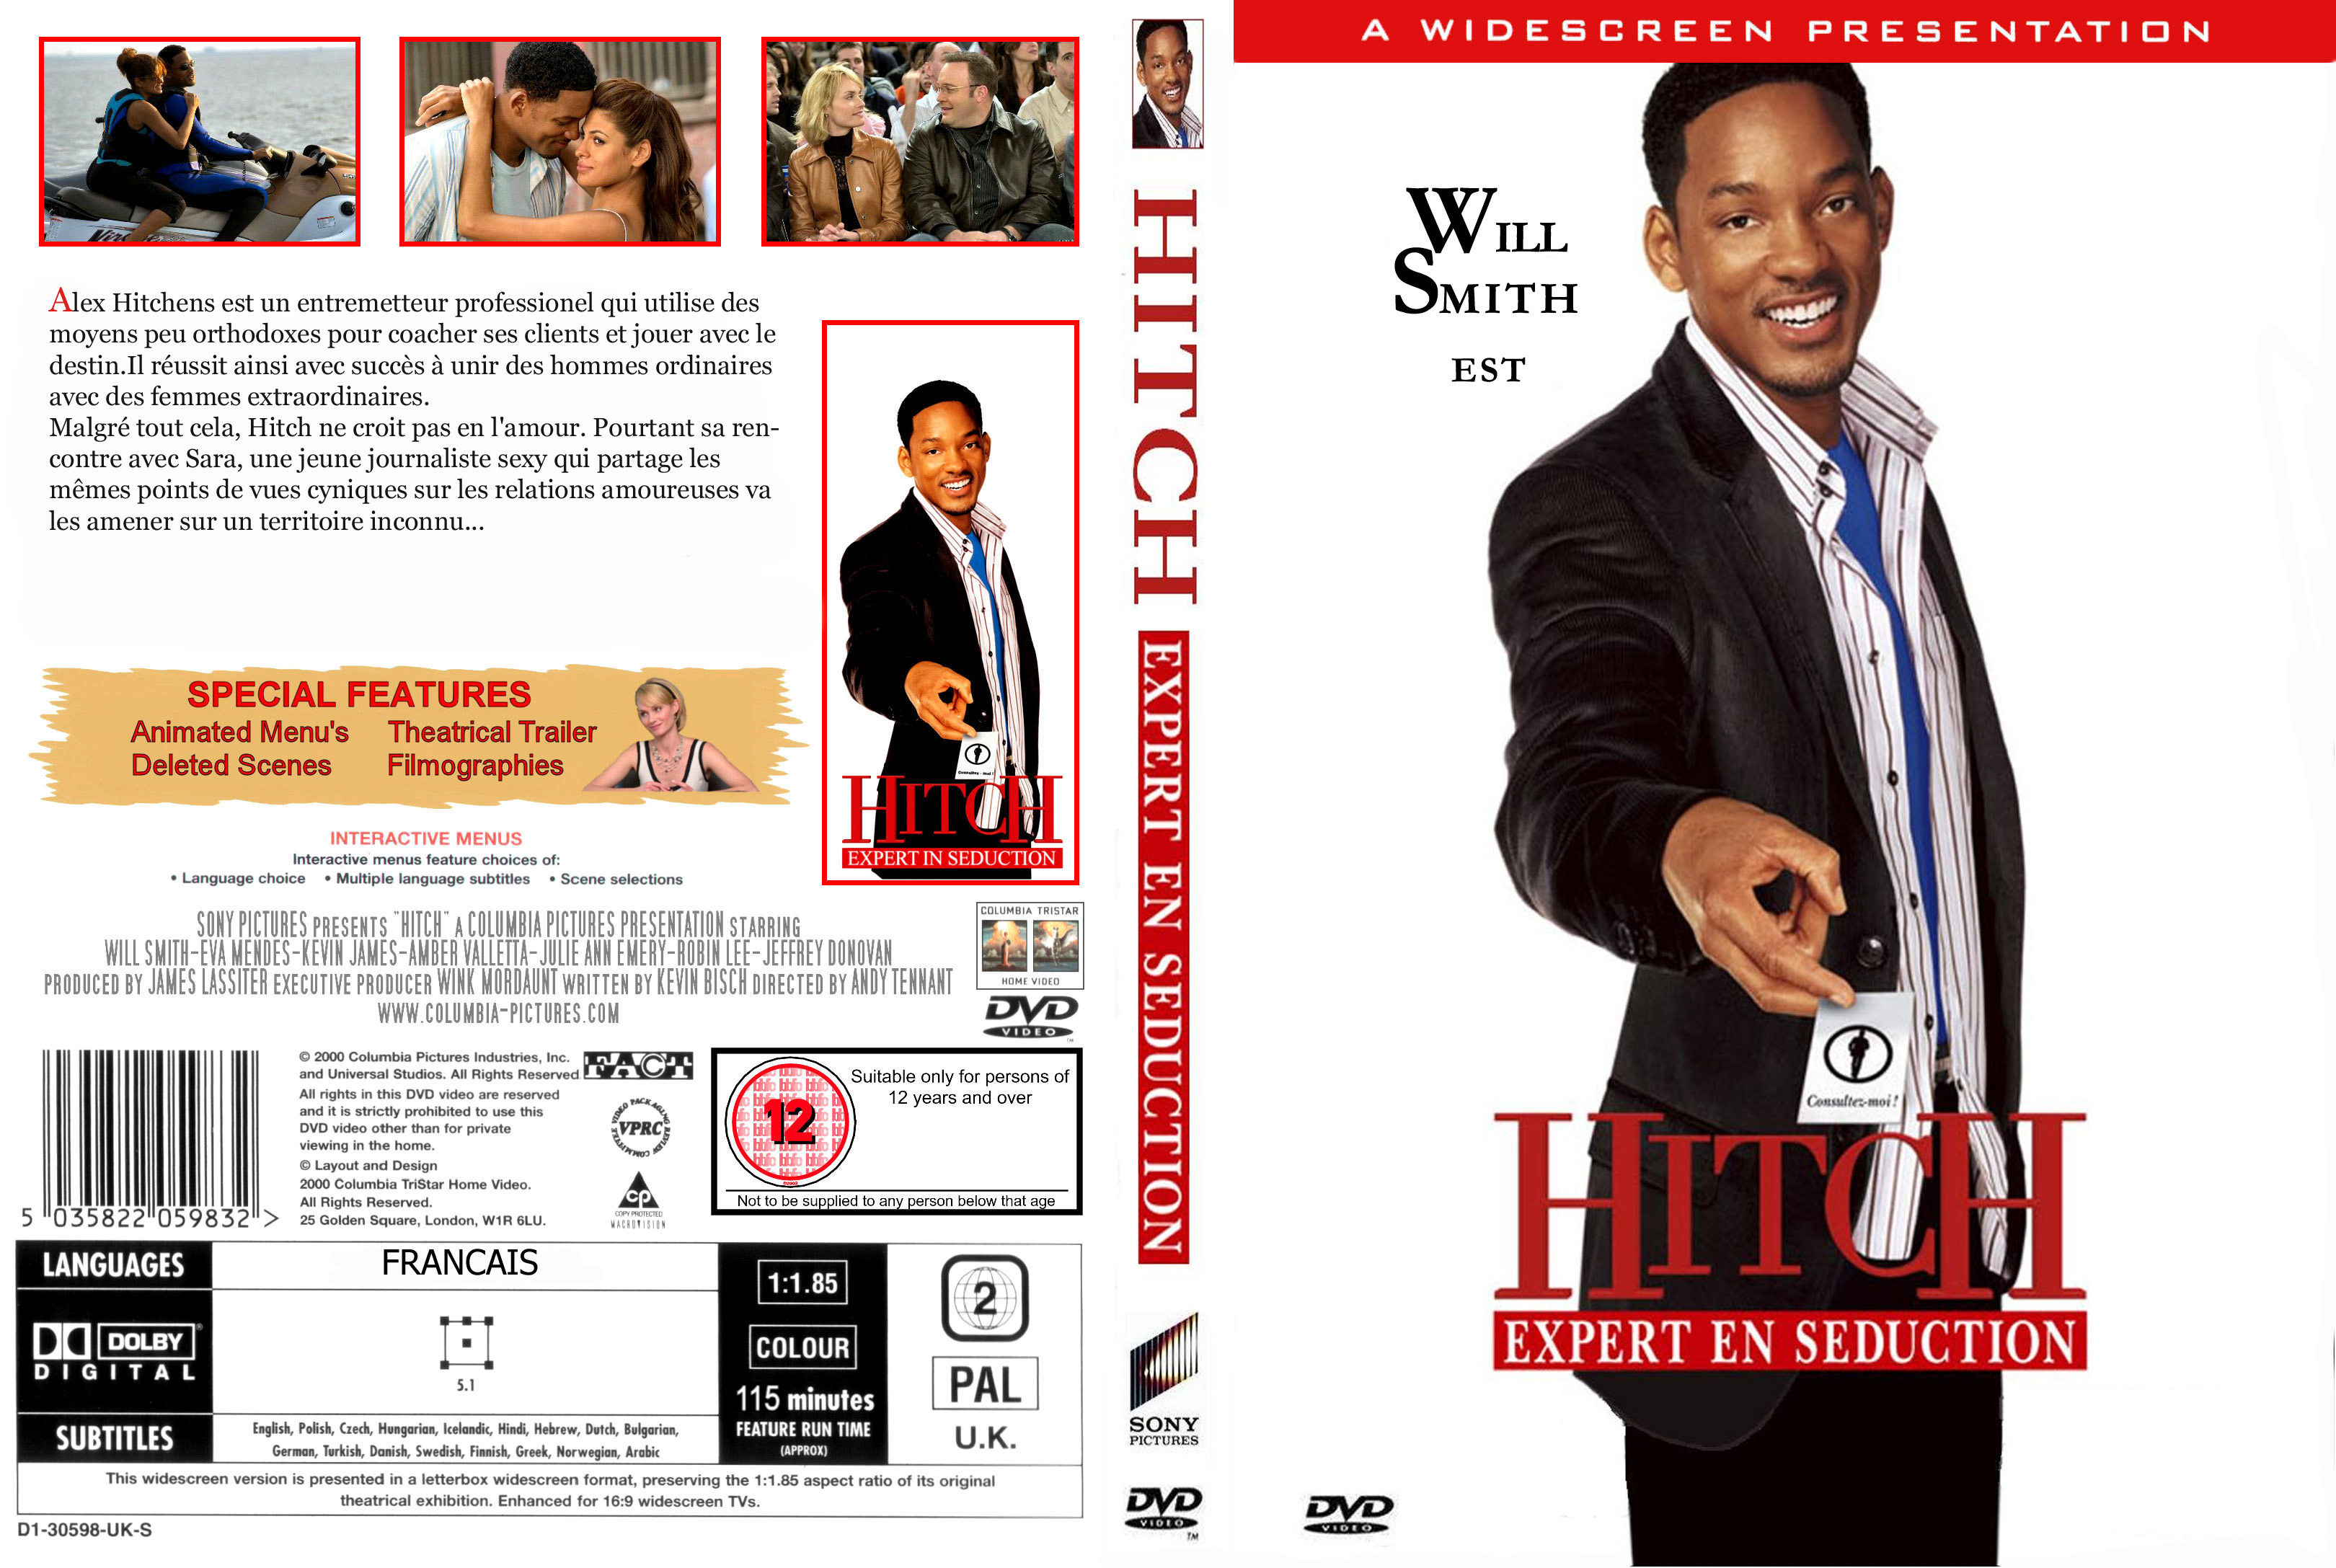 hitch communication and movie Running header: communication 1 communication in hitch sean steward com200: interpersonal communicaton professor tremika pinckney 8/5/13 communication 2 communication in hitch in the movie hitch, will smith play's a man's relationship counselor.